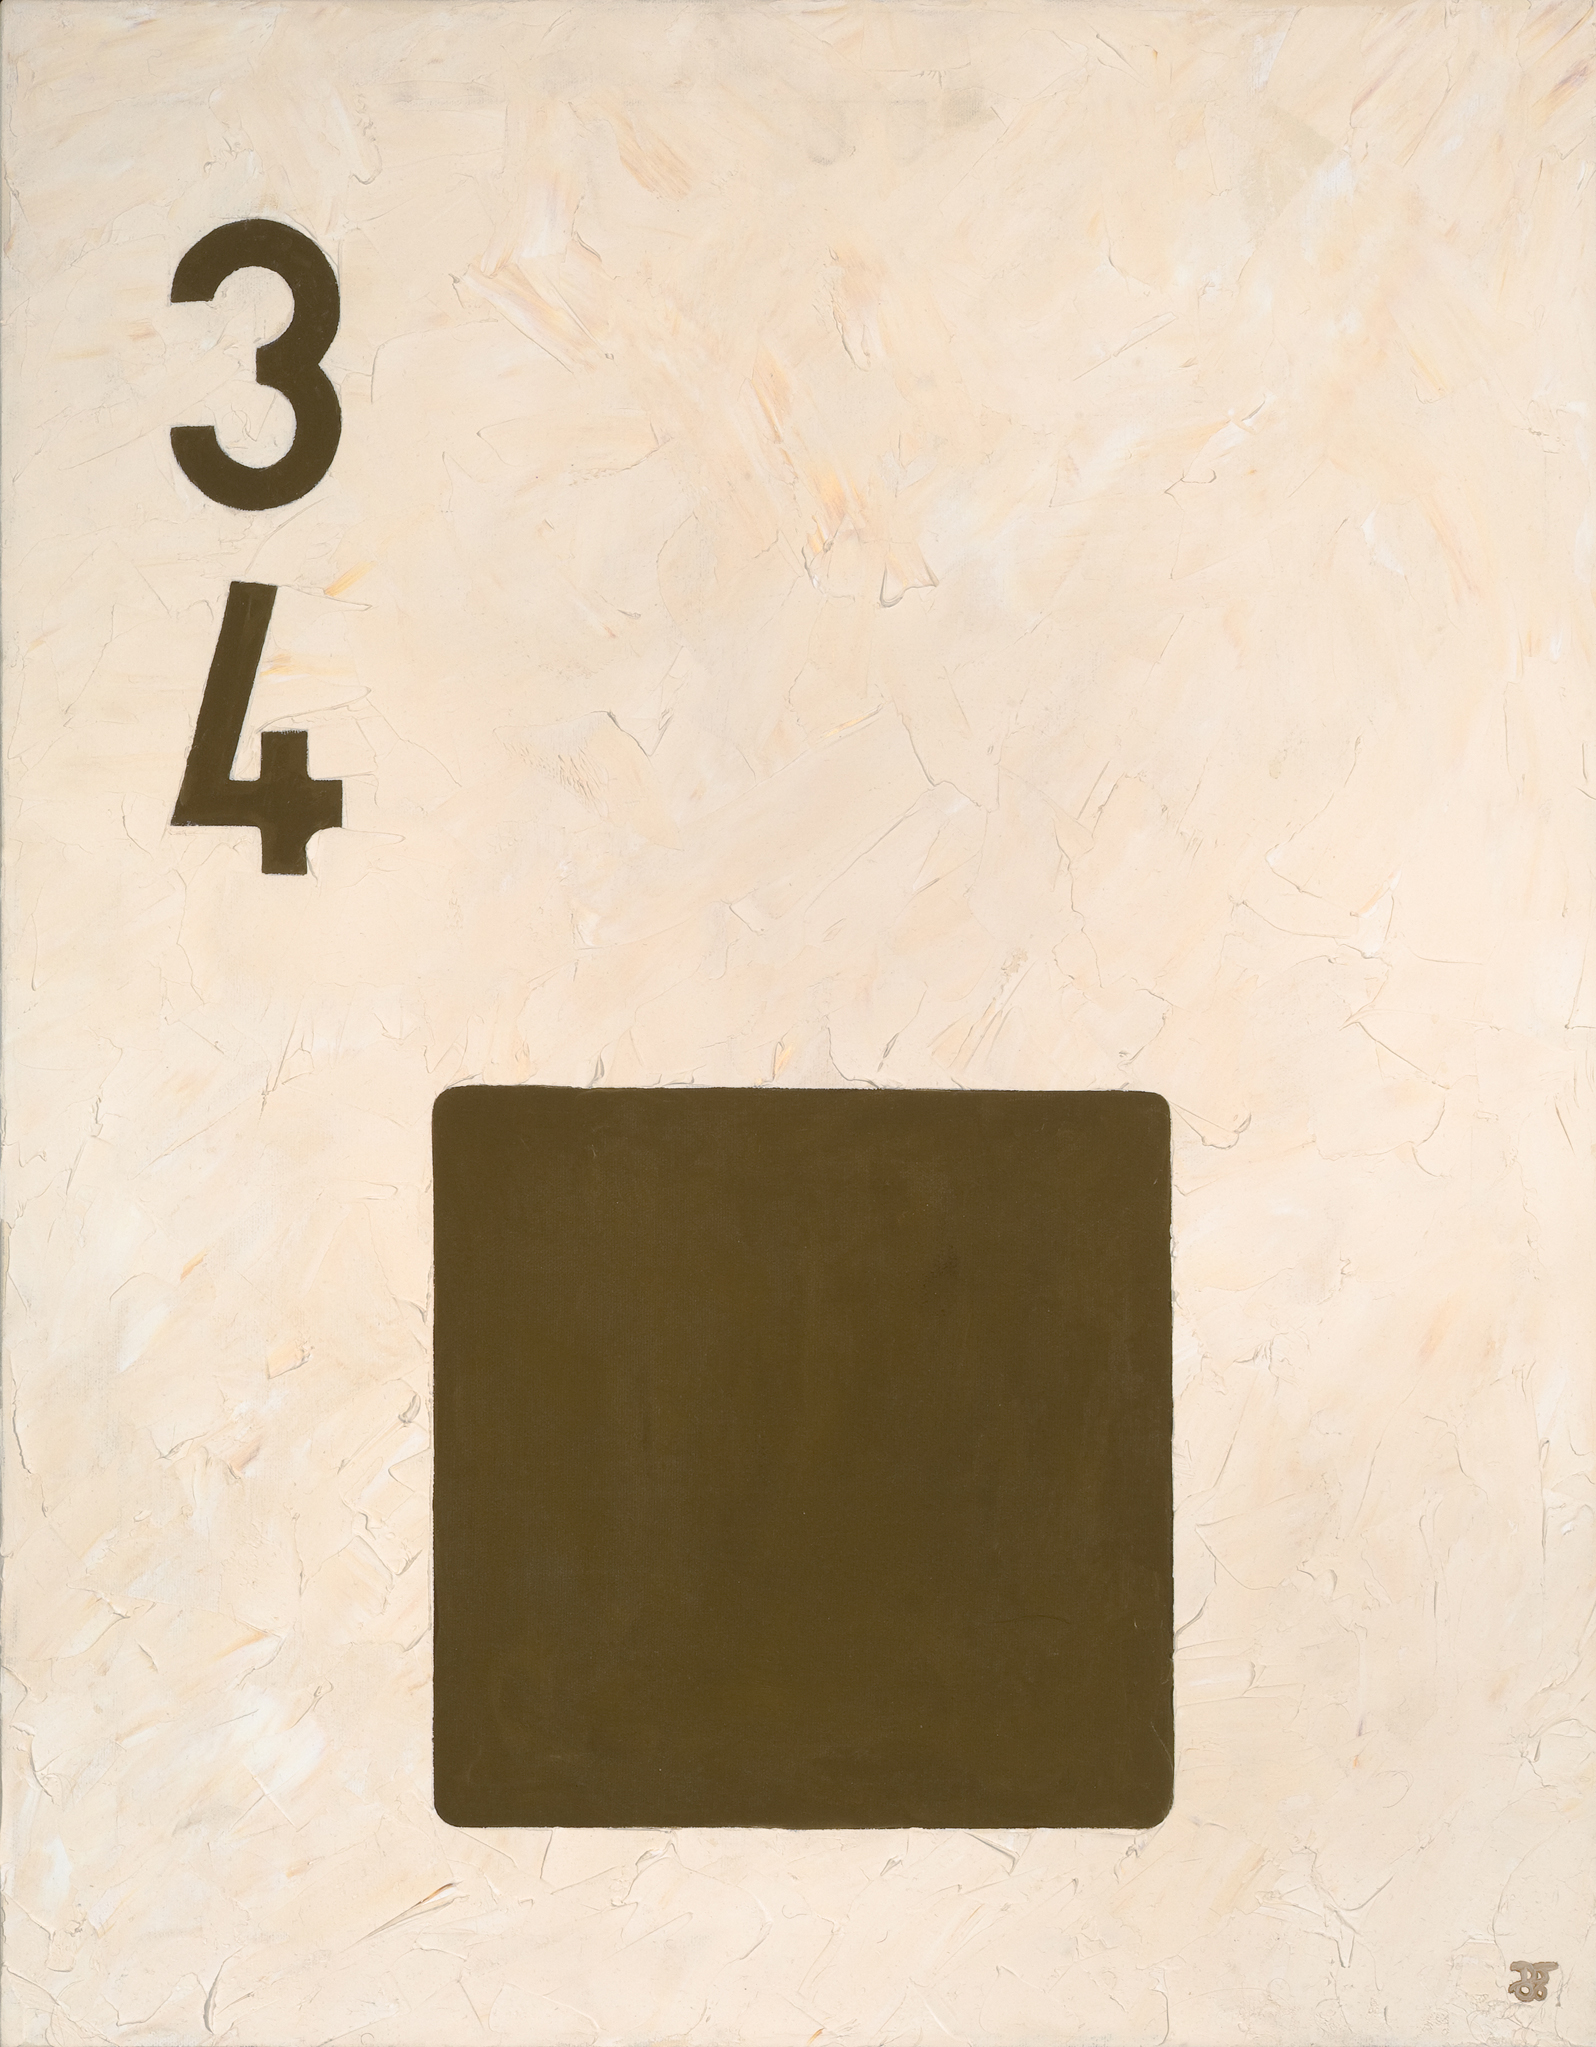 3 and 4